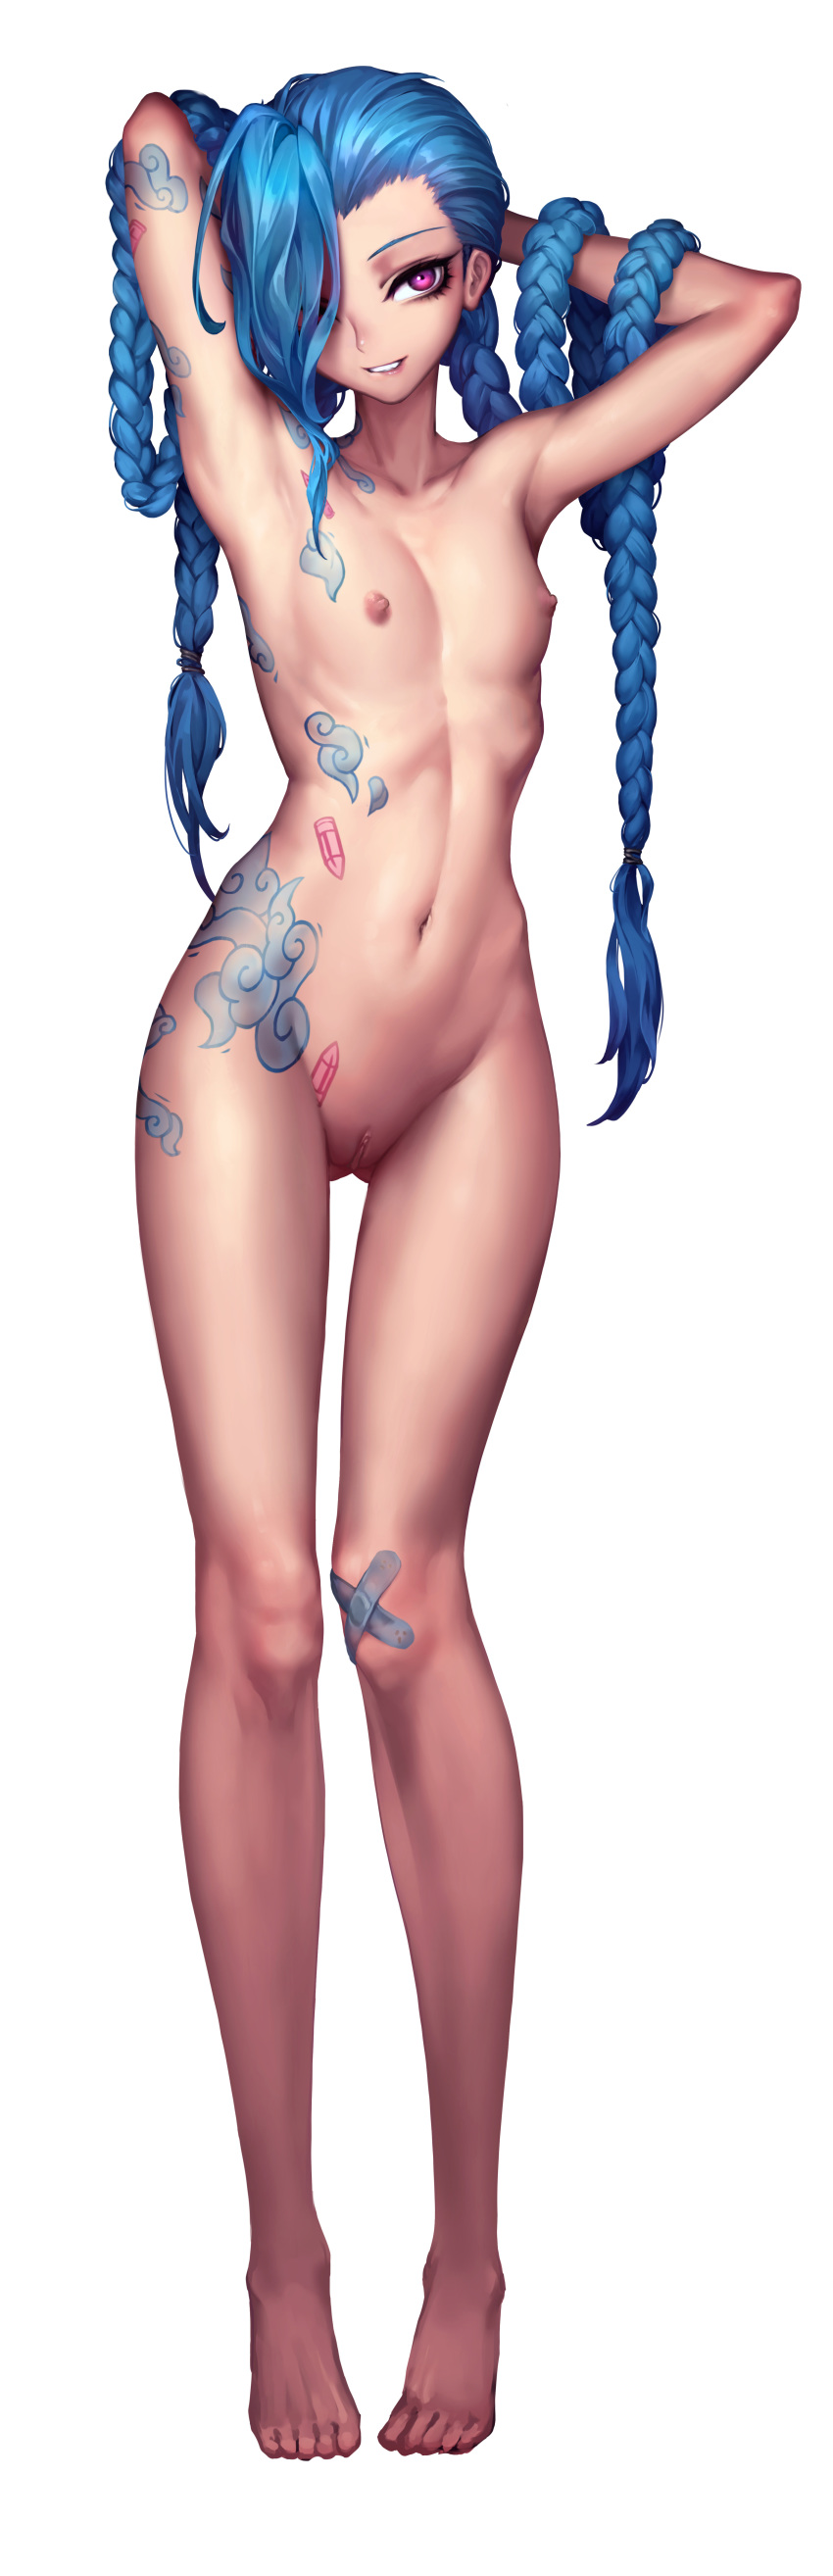 league jinx naked of legends Amazing world of gumball jamie